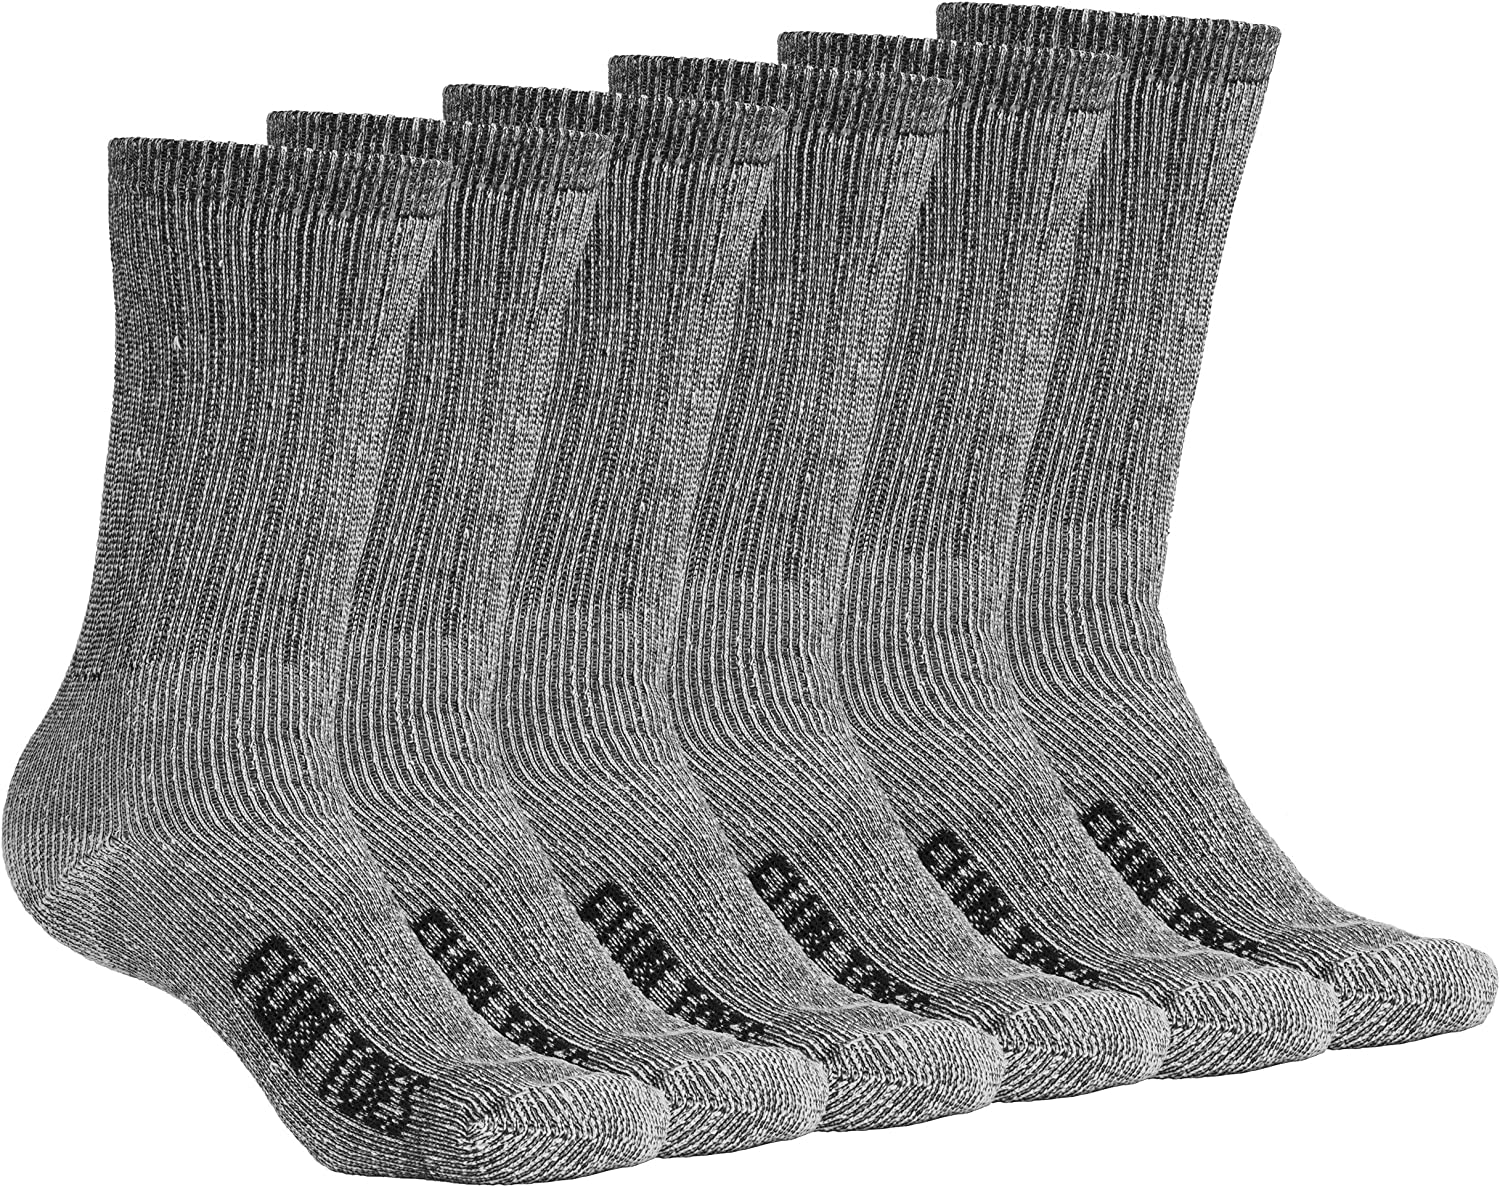 FUN TOES Men's Crew Merino Wool Socks 6 Pairs Winter Lightweight, Reinforced Size 8-12